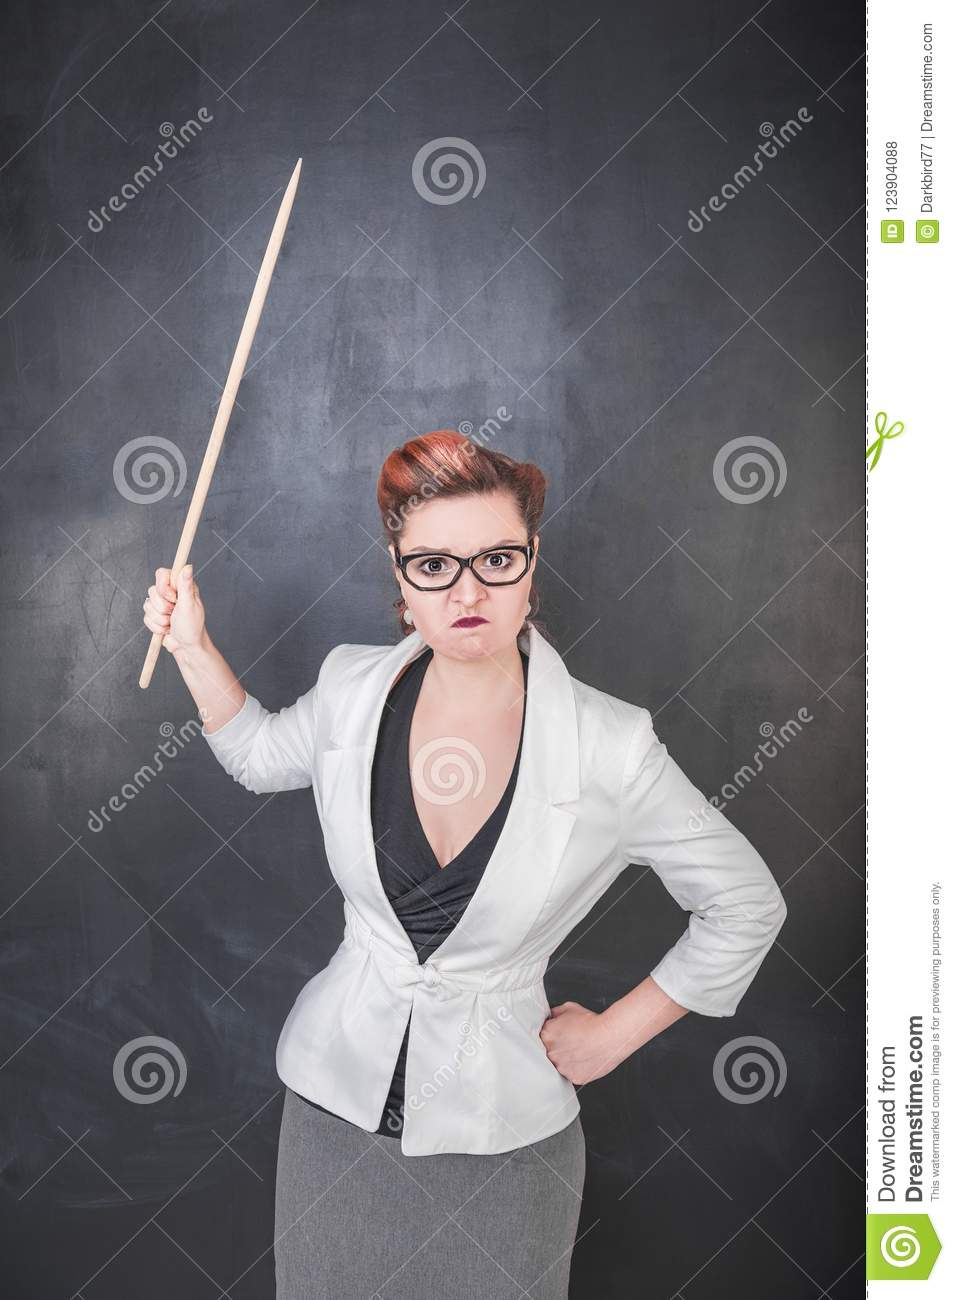 Angry teacher with pointer on the chalkboard background